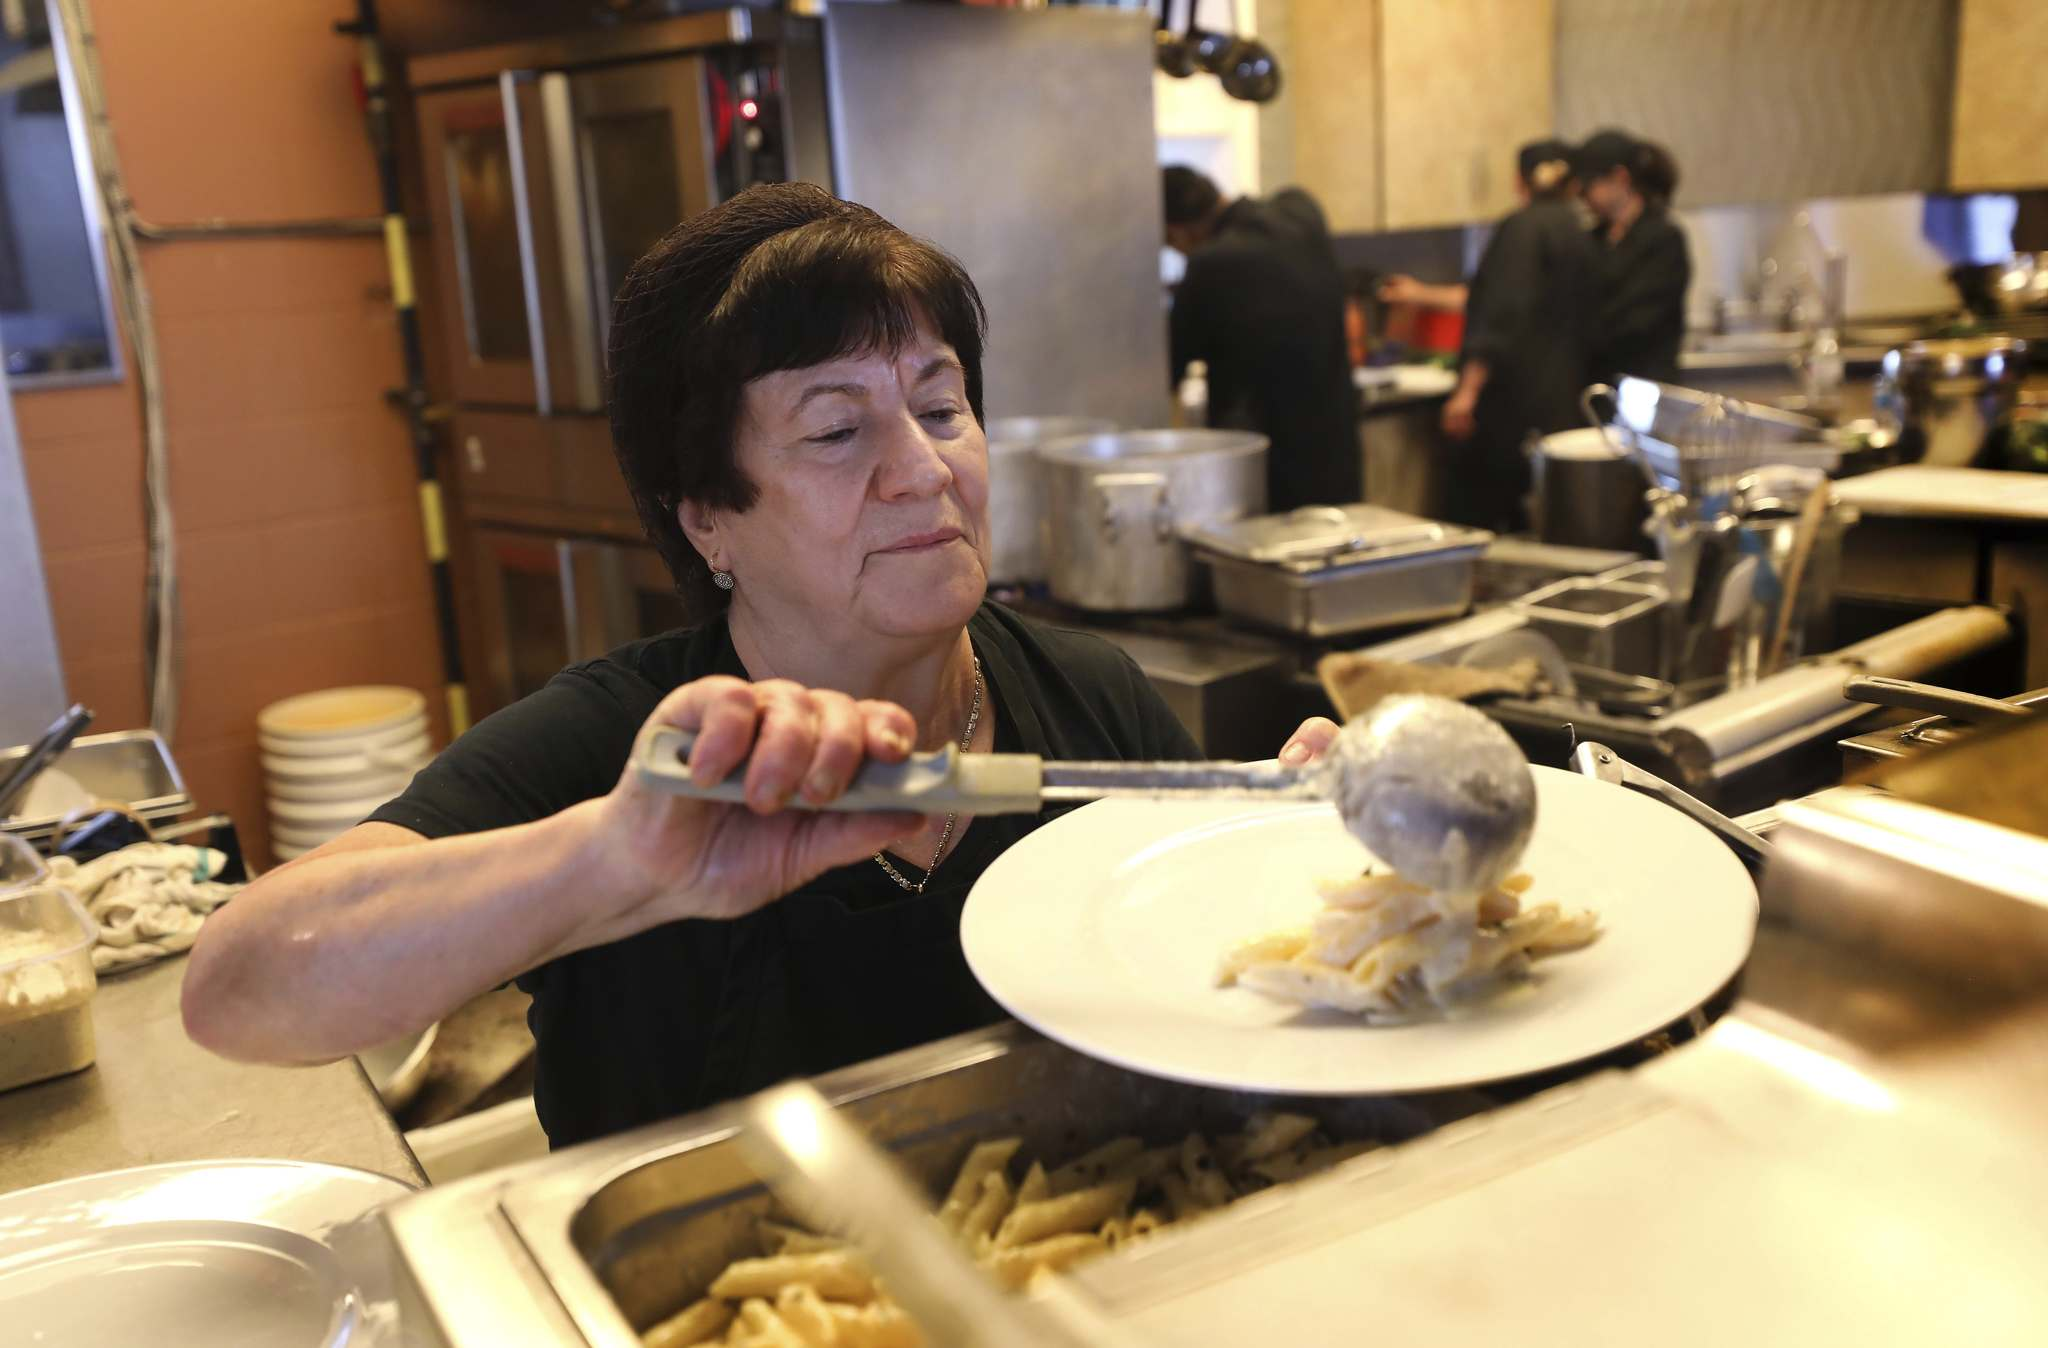 Chef Annette Santilli serves up lunch at De Luca's restaurant, known for it's all-you-can-eat buffet.